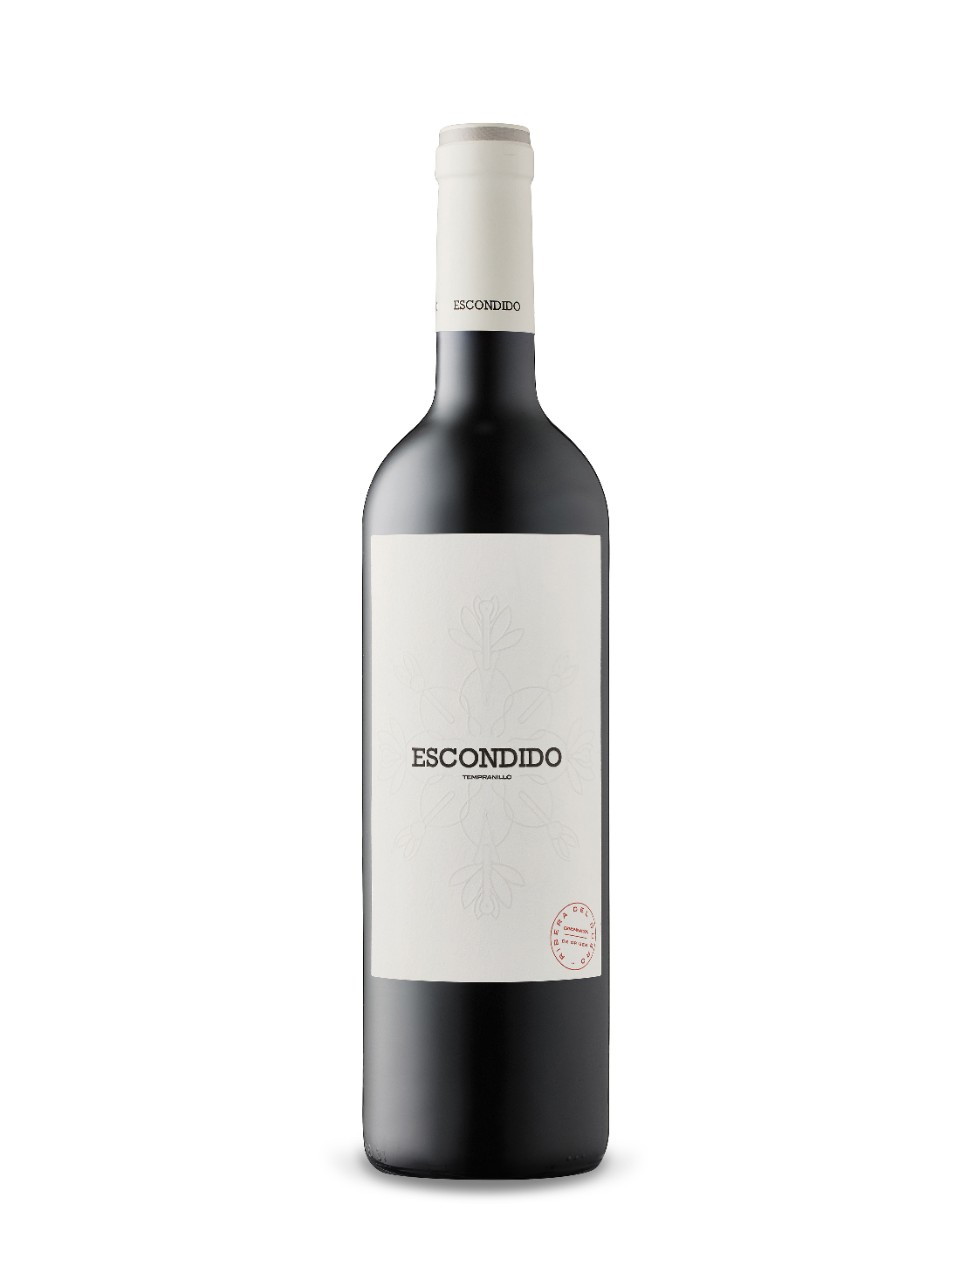 Escondido Tempranillo 2015